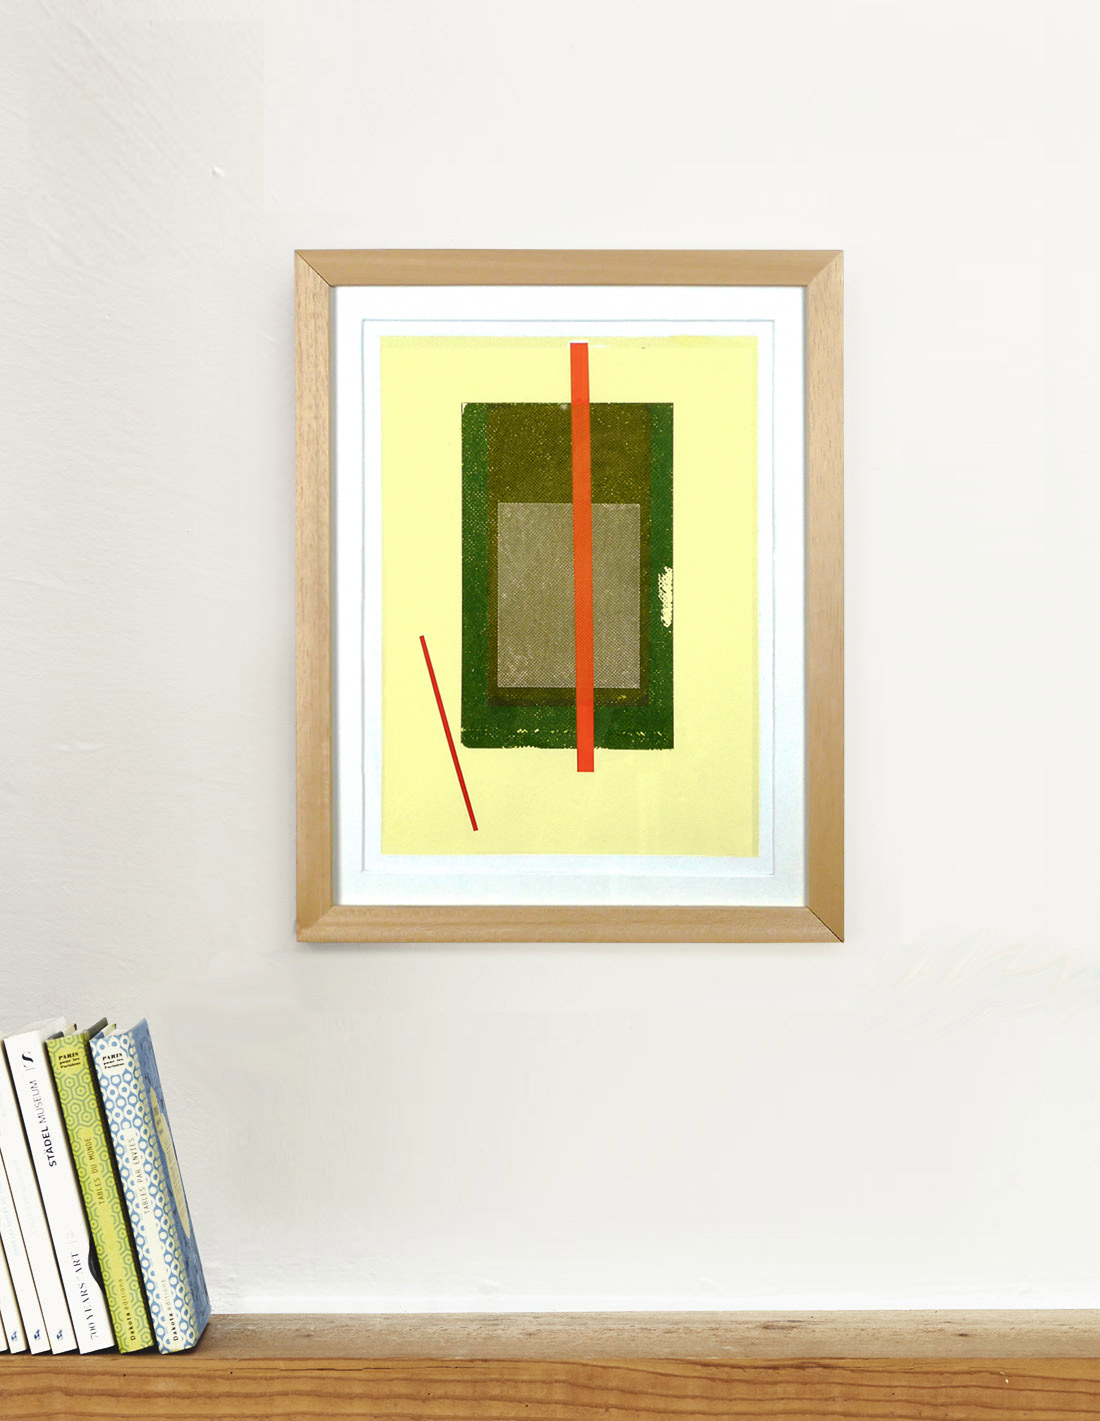 Carlos Stoffel - Tableau - Jaune rectangle vert